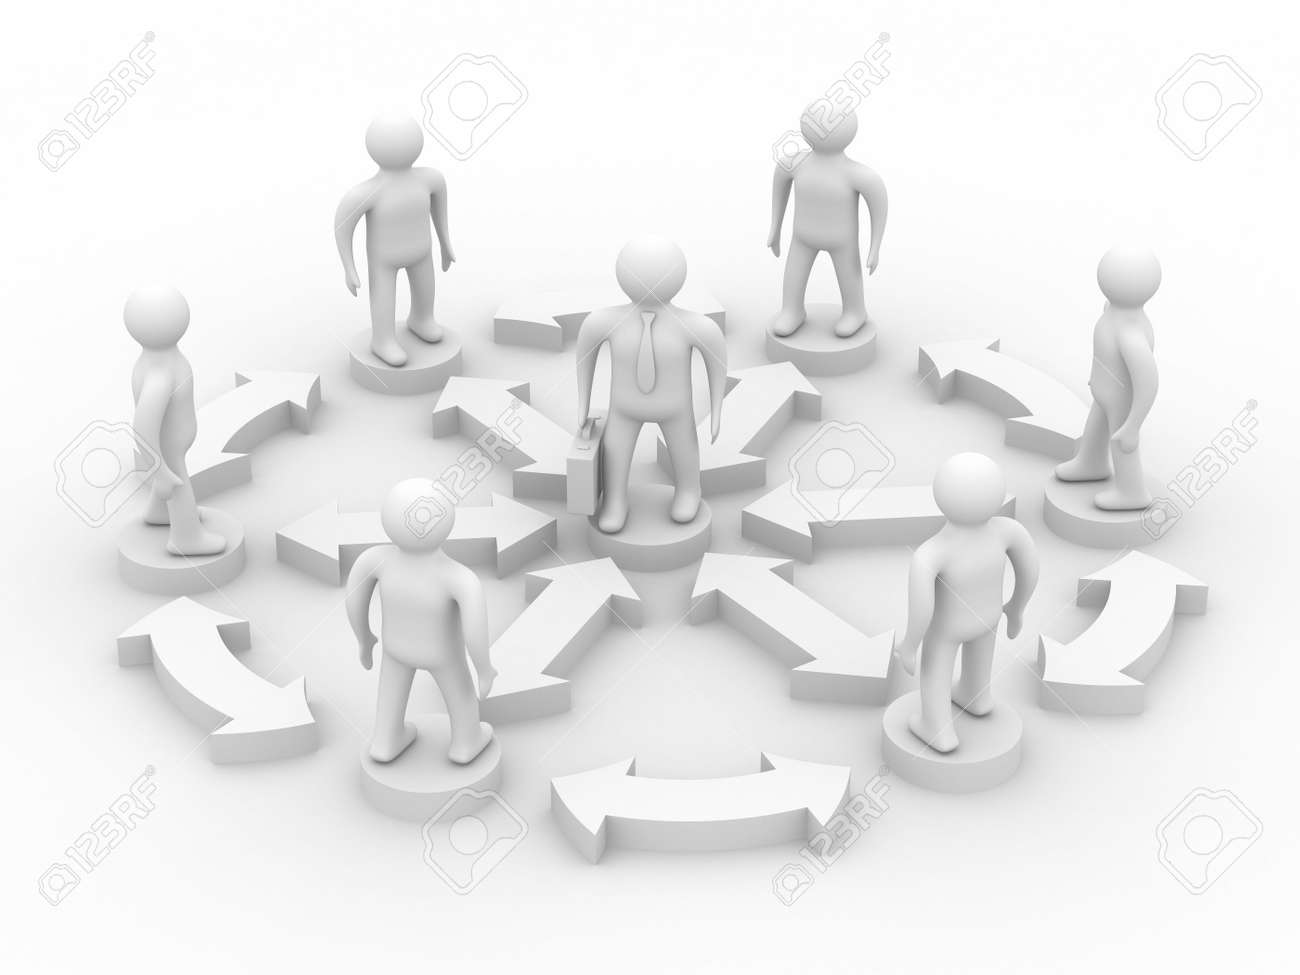 Conceptual image of teamwork. Isolated 3D image. Stock Photo - 5512849